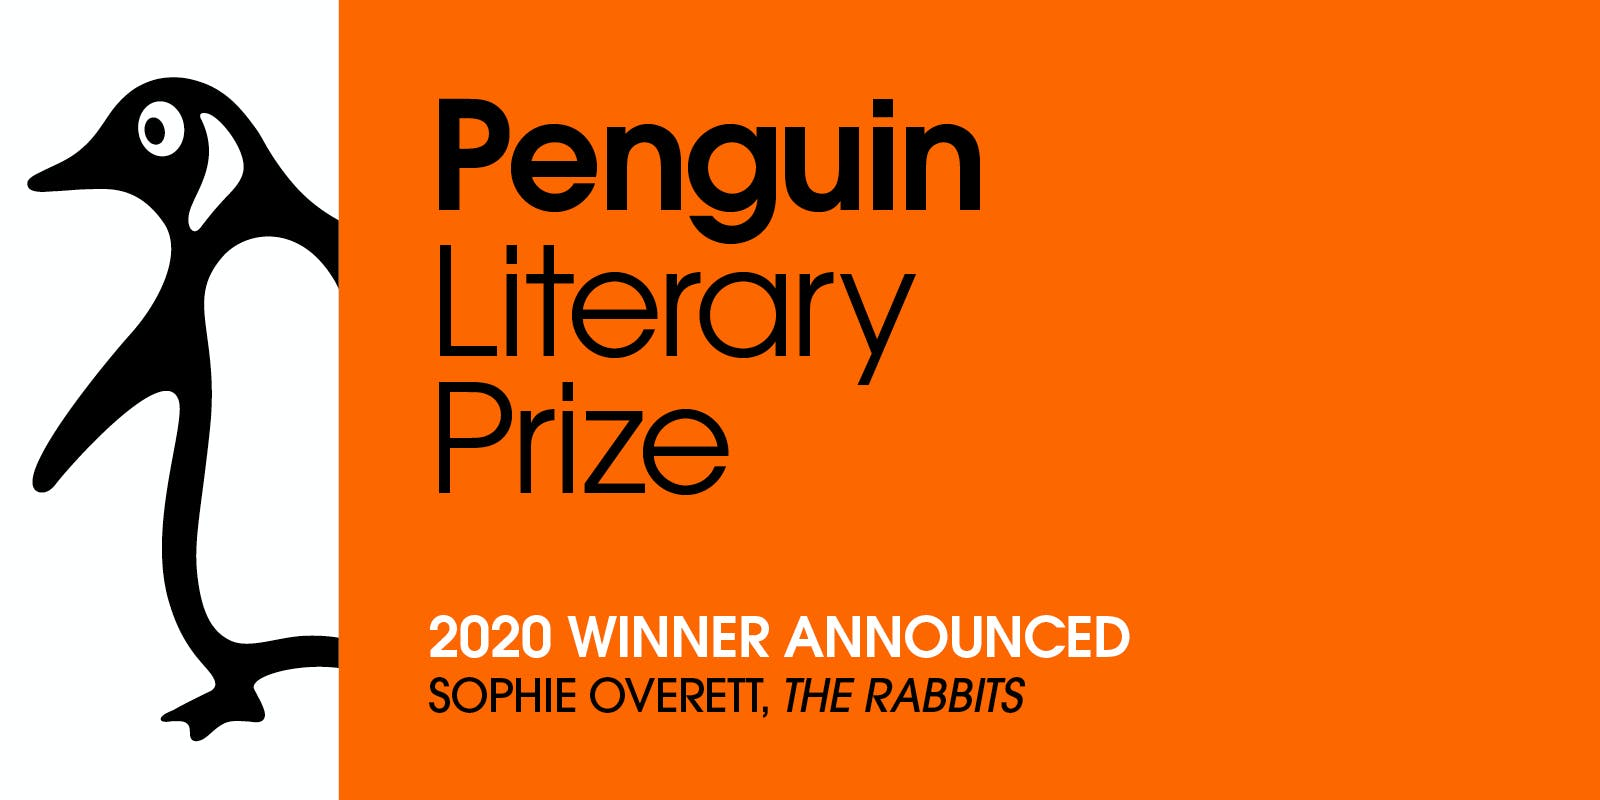 Penguin Literary Prize 2020 winner announced